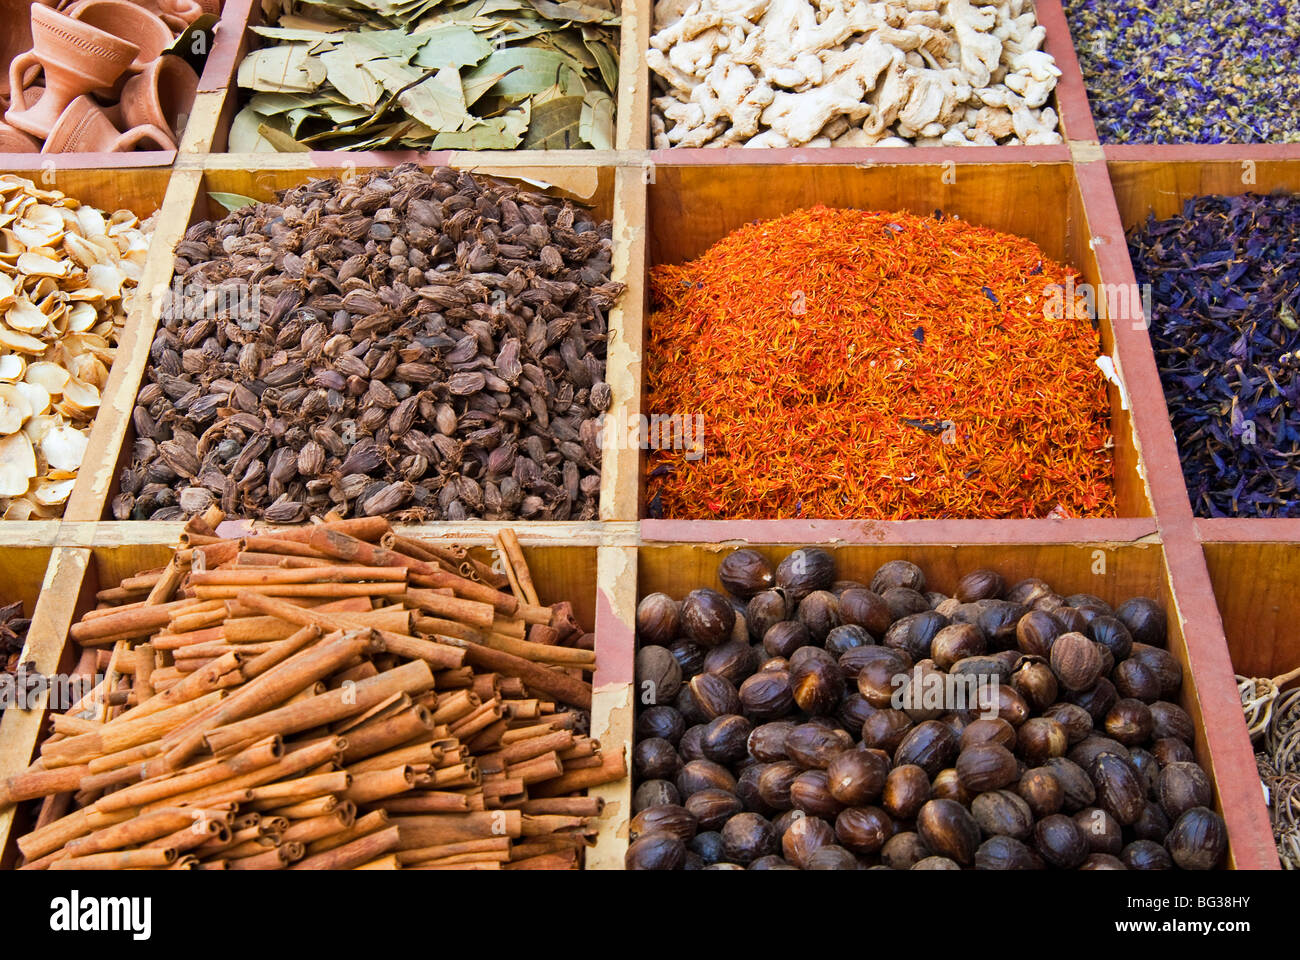 Spice Market Middle East Stock Images - Download 2,084 ...   Middle East Spice Market